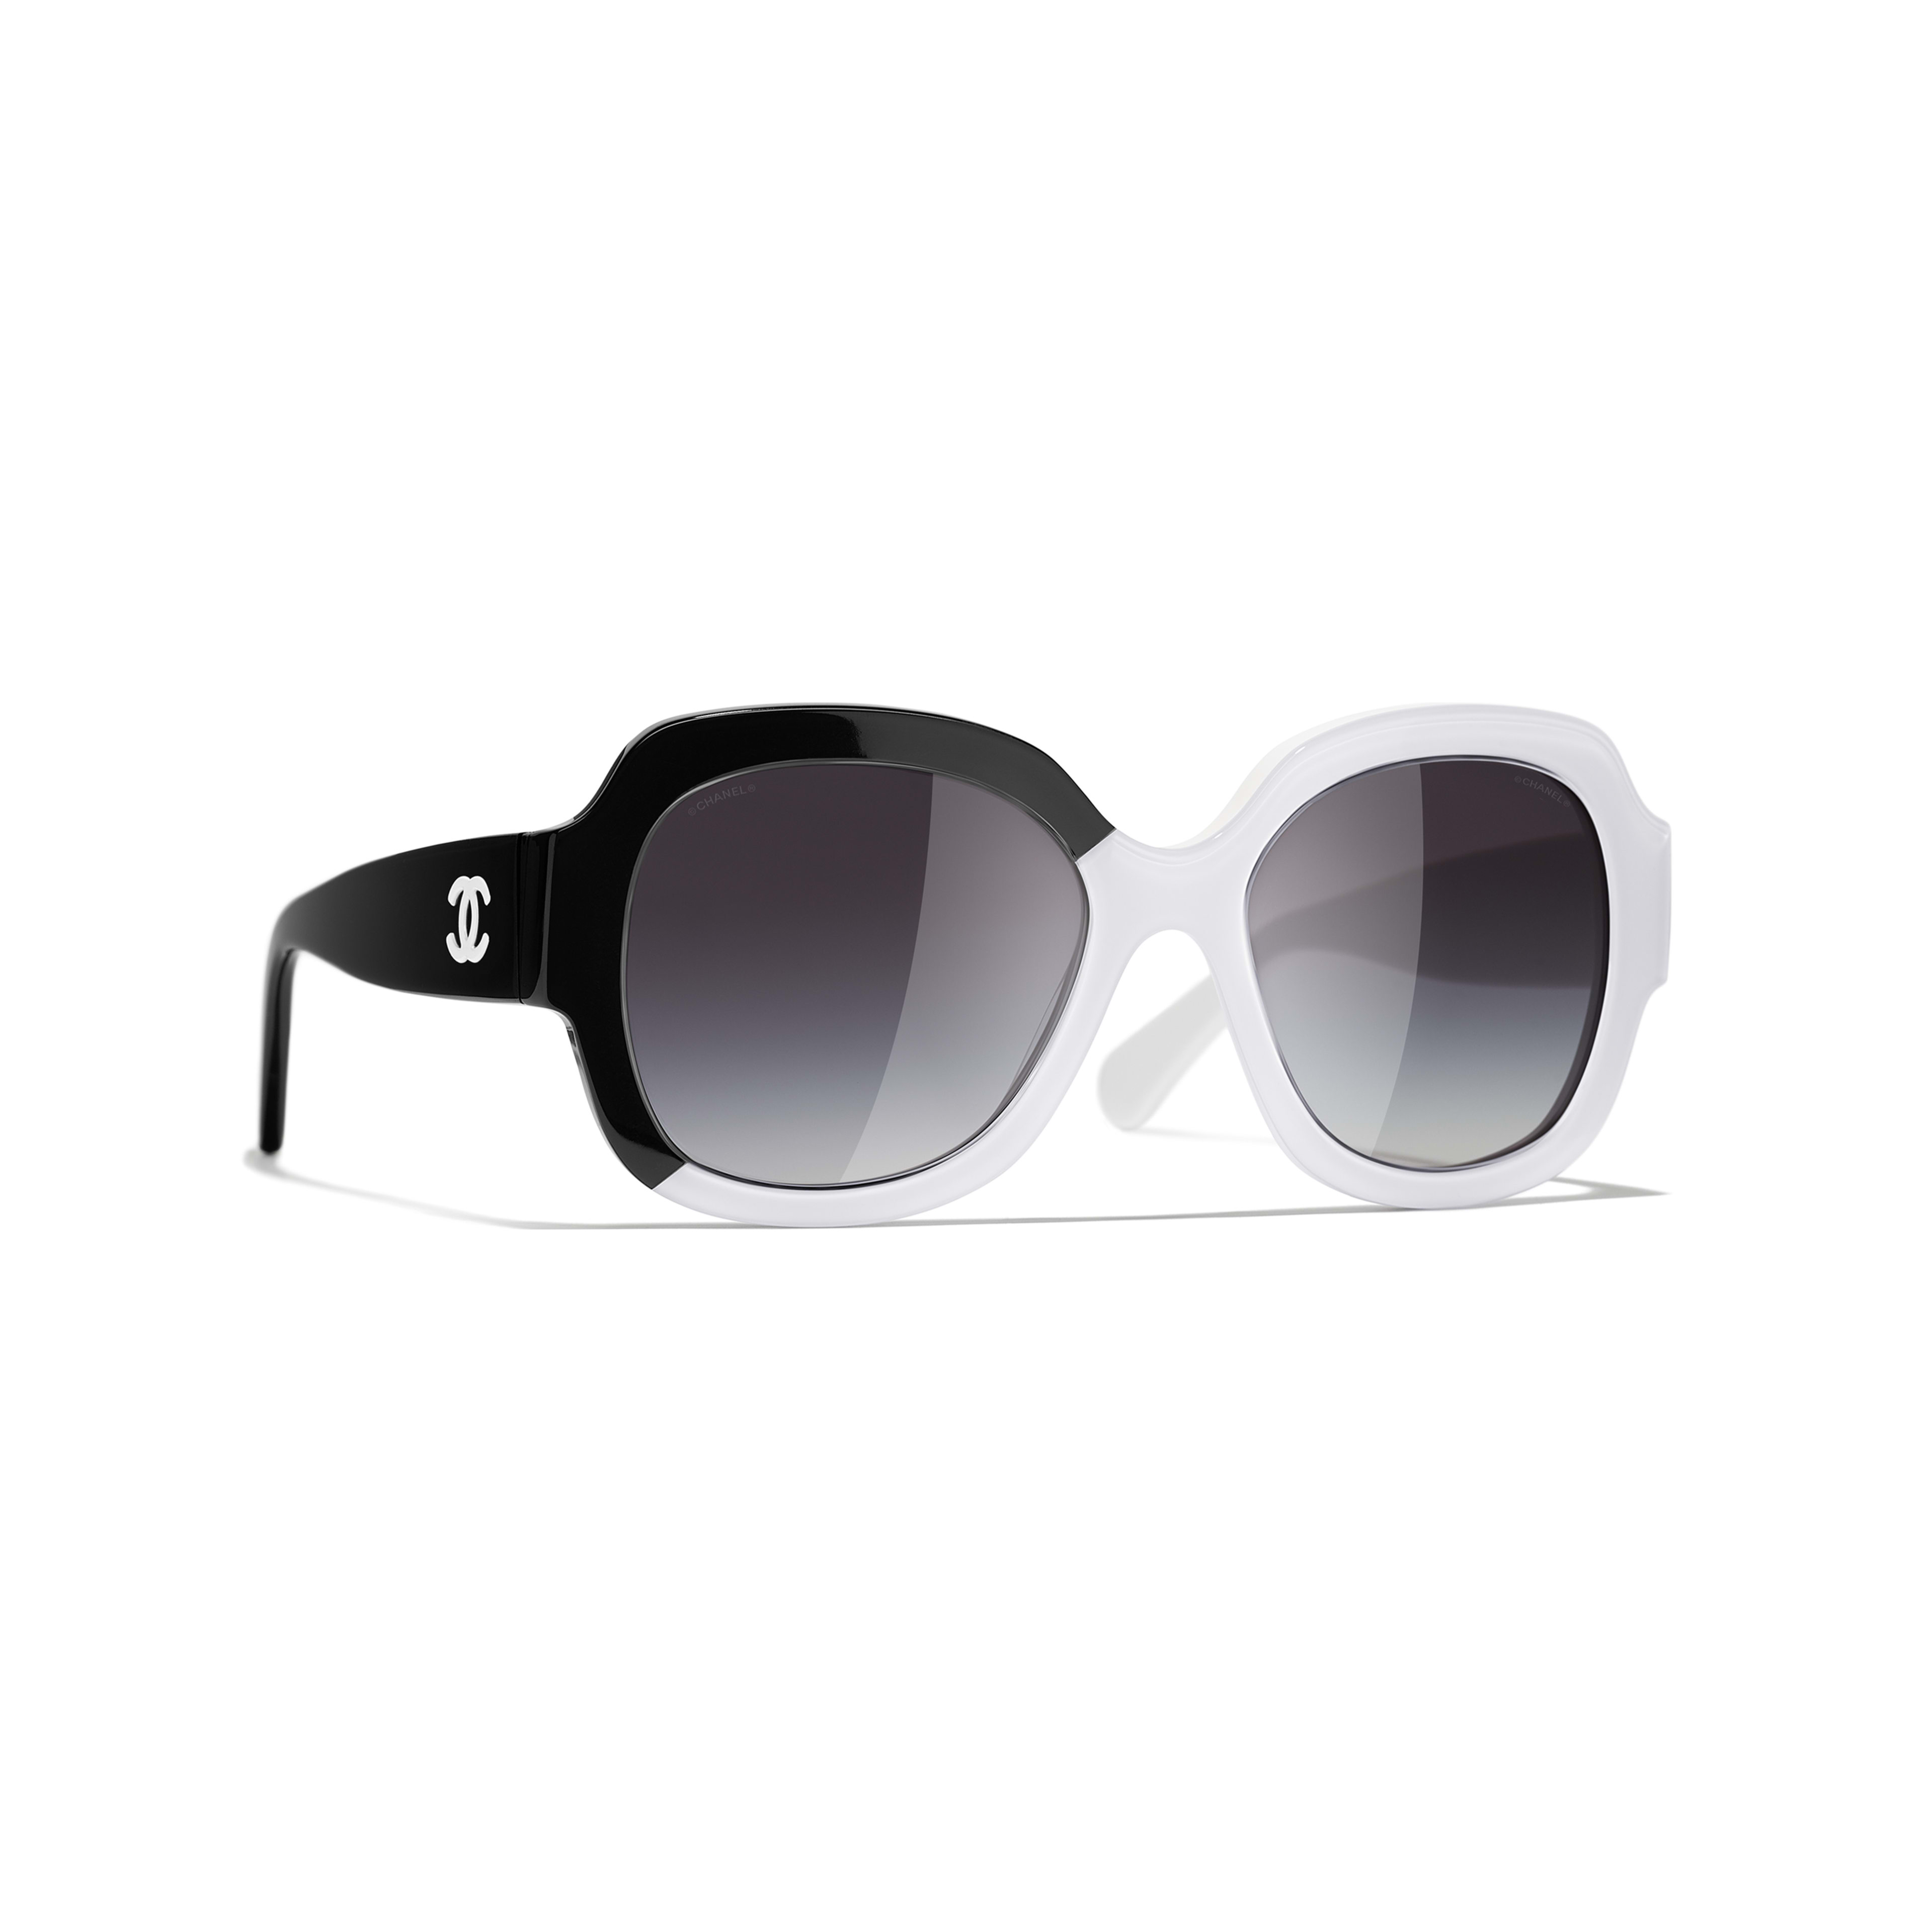 Square Sunglasses - Black & White - Acetate - CHANEL - Default view - see standard sized version